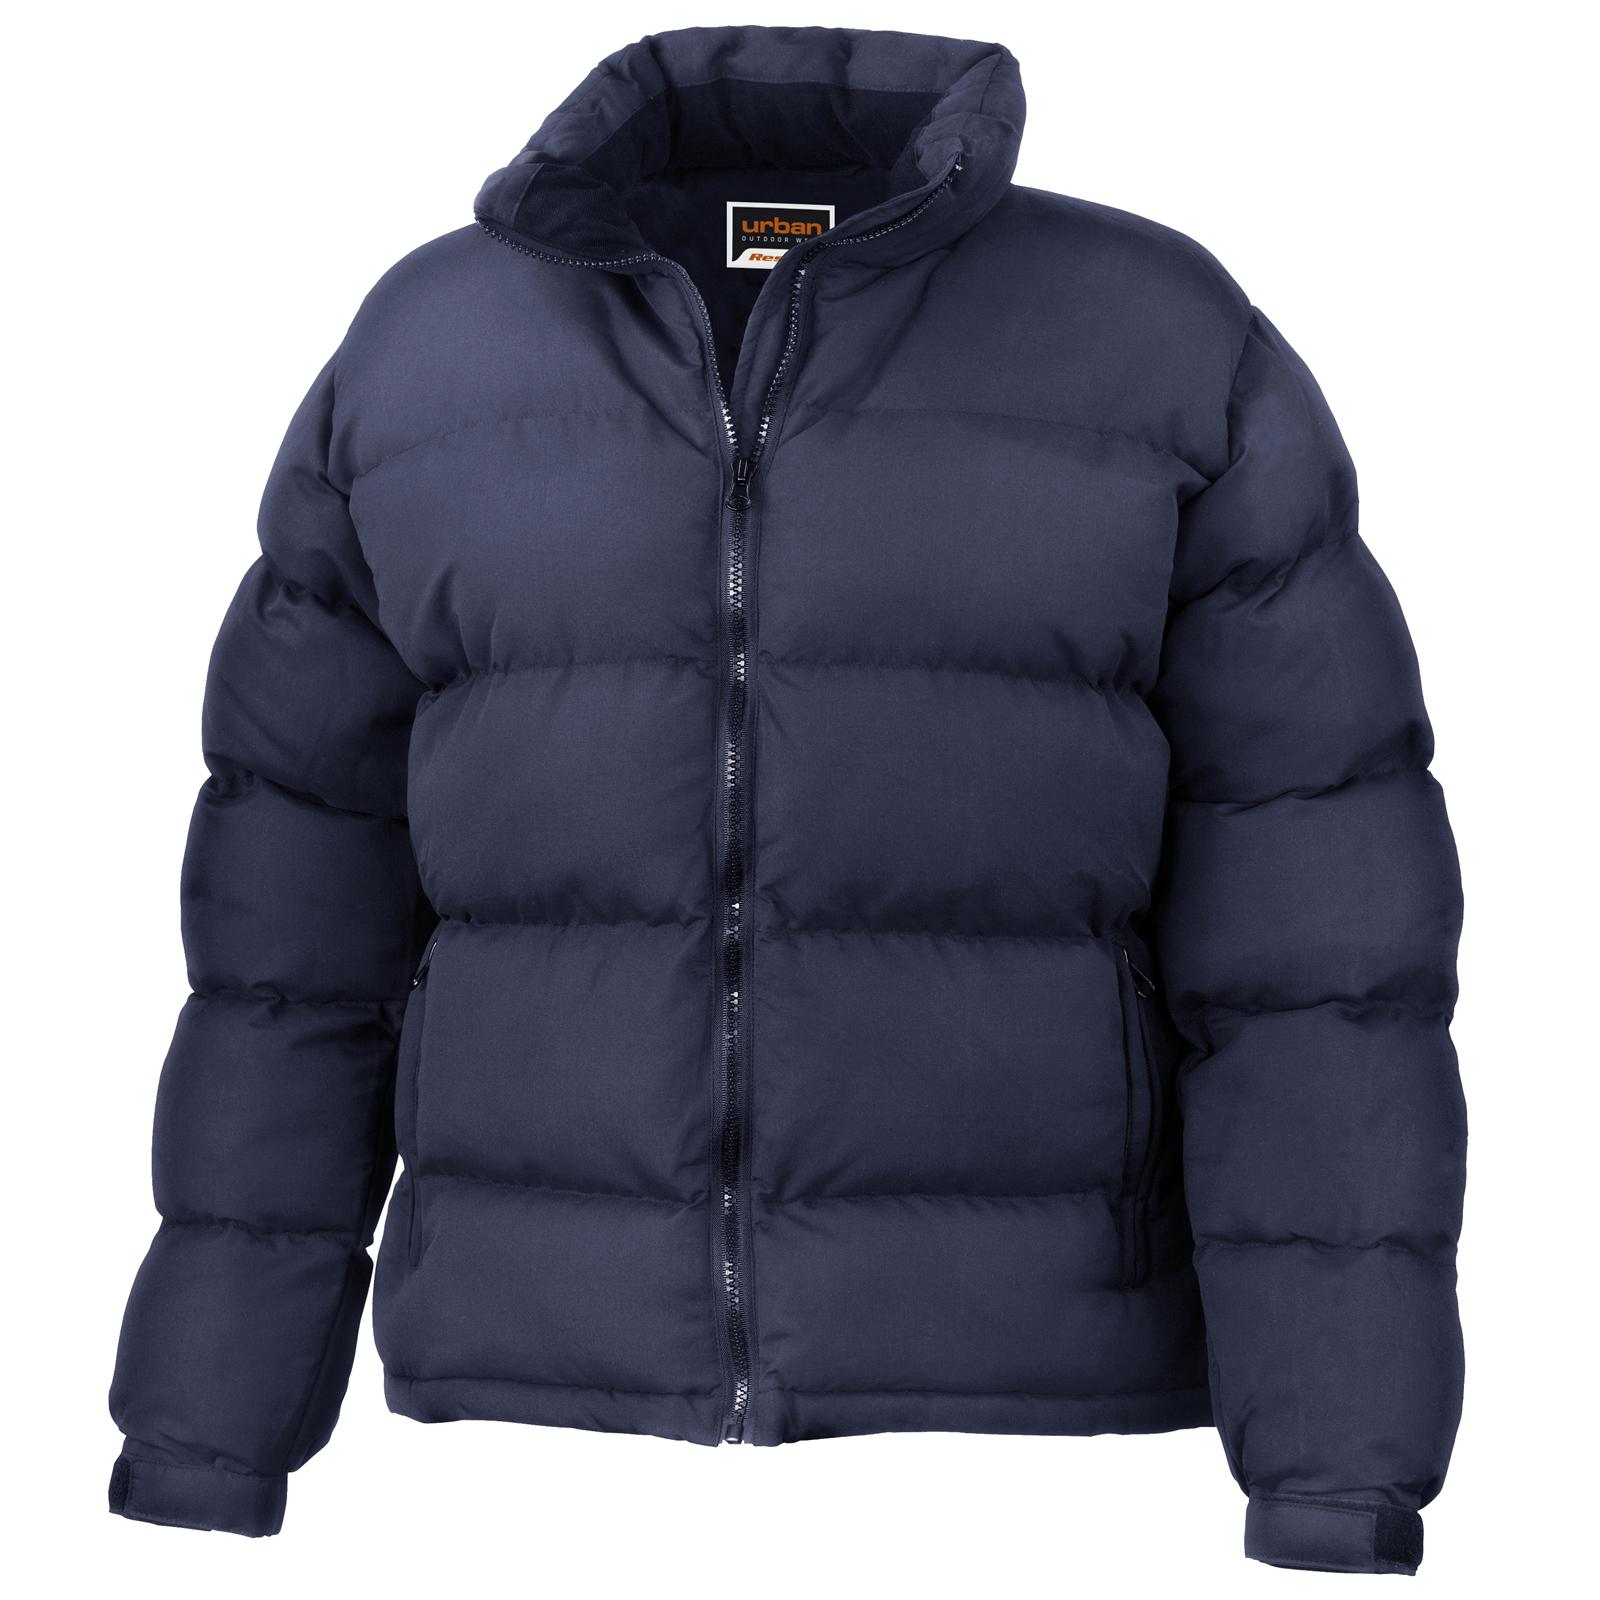 Product Description Layer this puffer vest over all of your favorites for added style and.